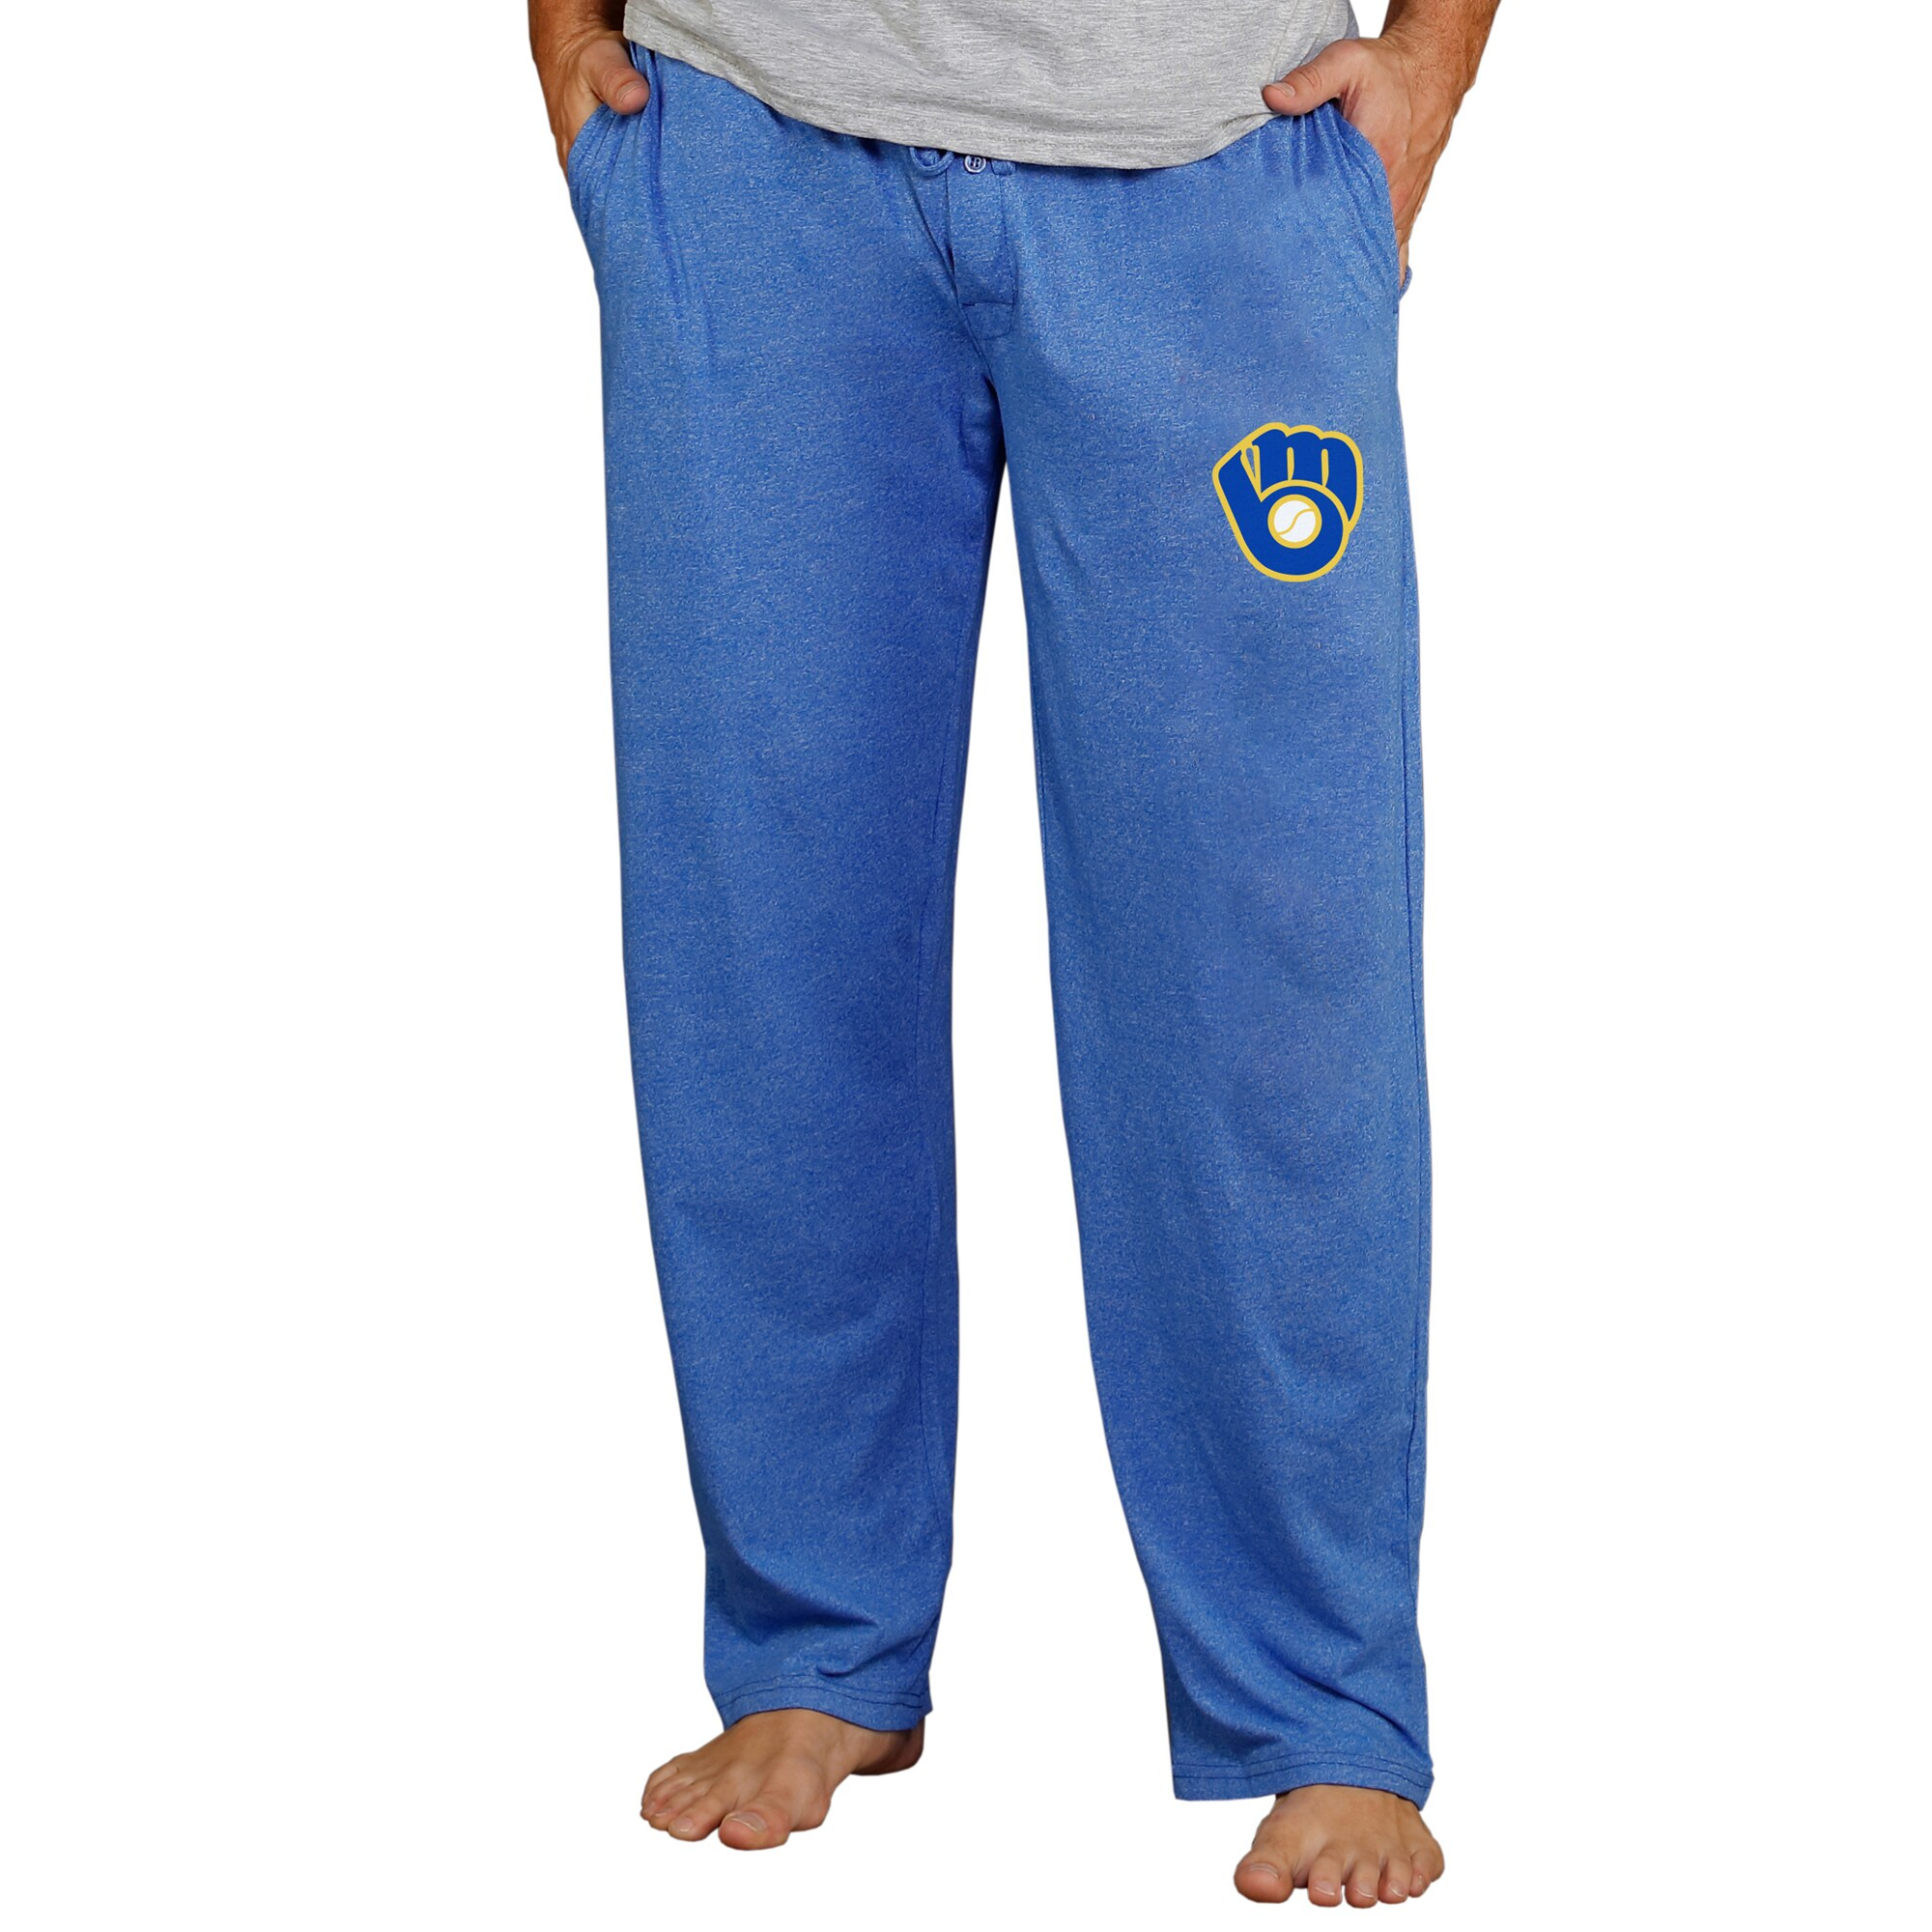 Milwaukee Brewers Concepts Sport Cooperstown Quest Lounge Pants - Royal